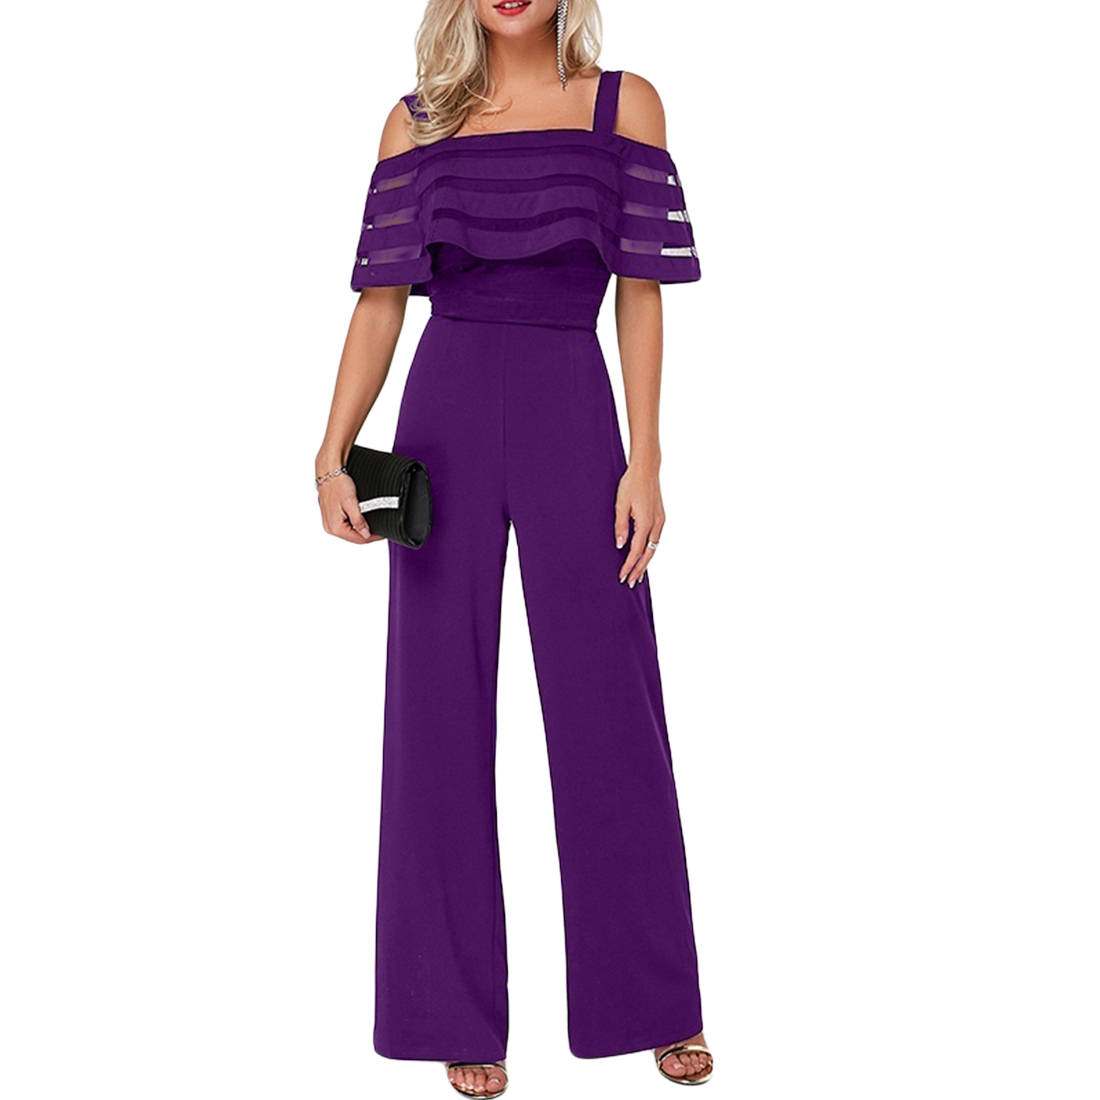 Sexy Women Jumpsuit Off Shoulder Plus Size Summer Romper Wide Leg Trousers Womens Casual Clubwear Outfits Blue OL Mesh Overalls